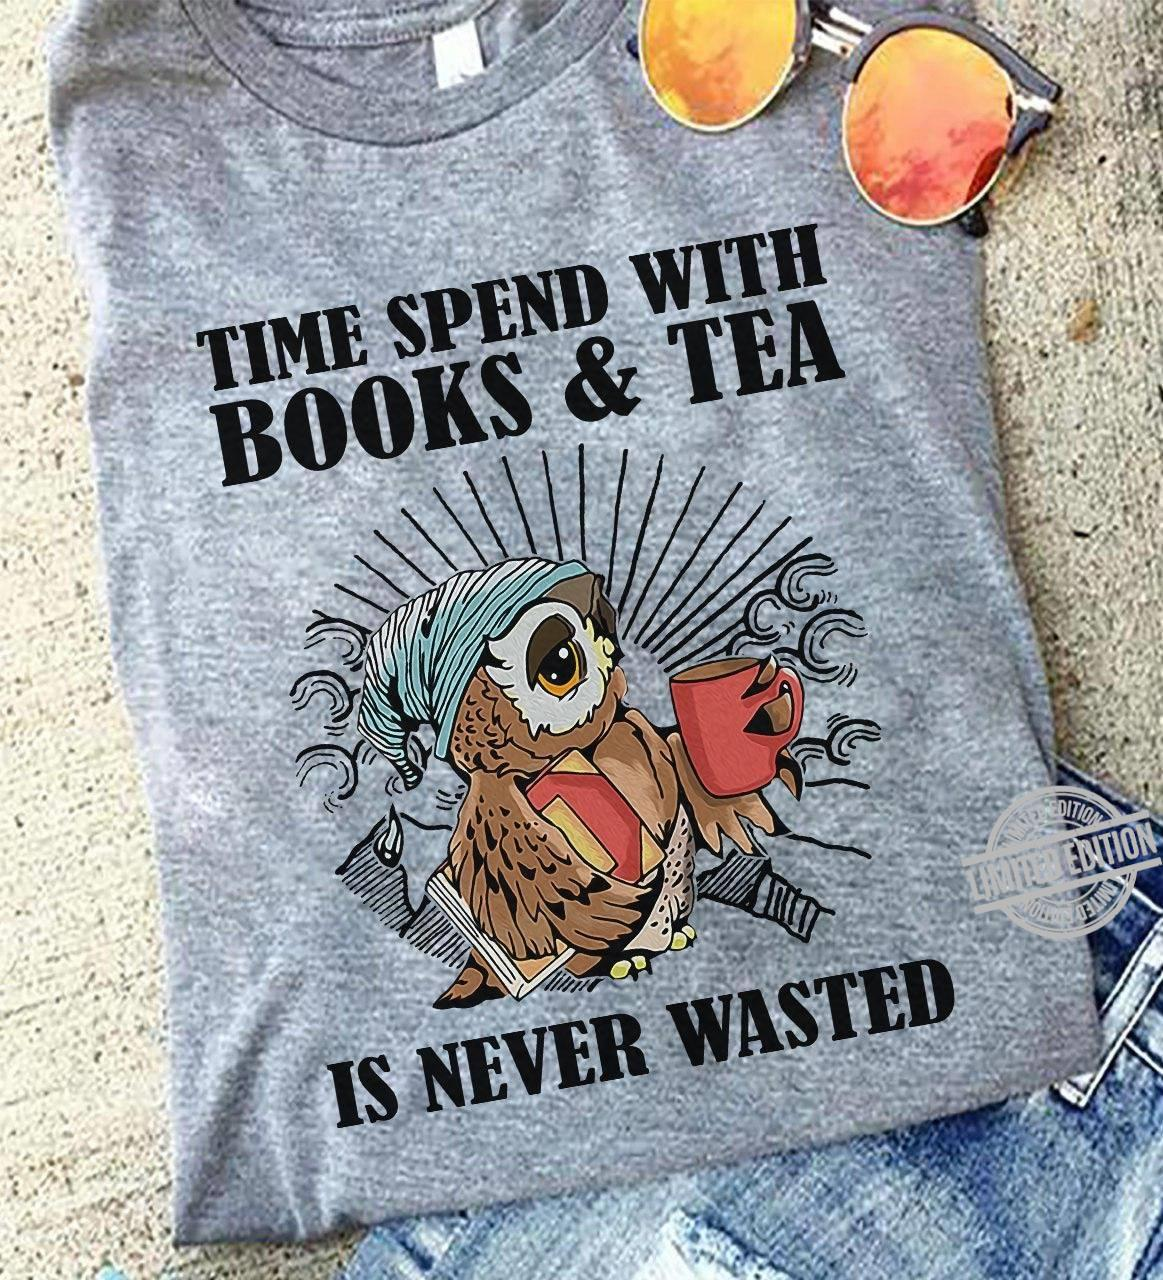 Time Spent With Books Tea Is Never Wasted Shirt